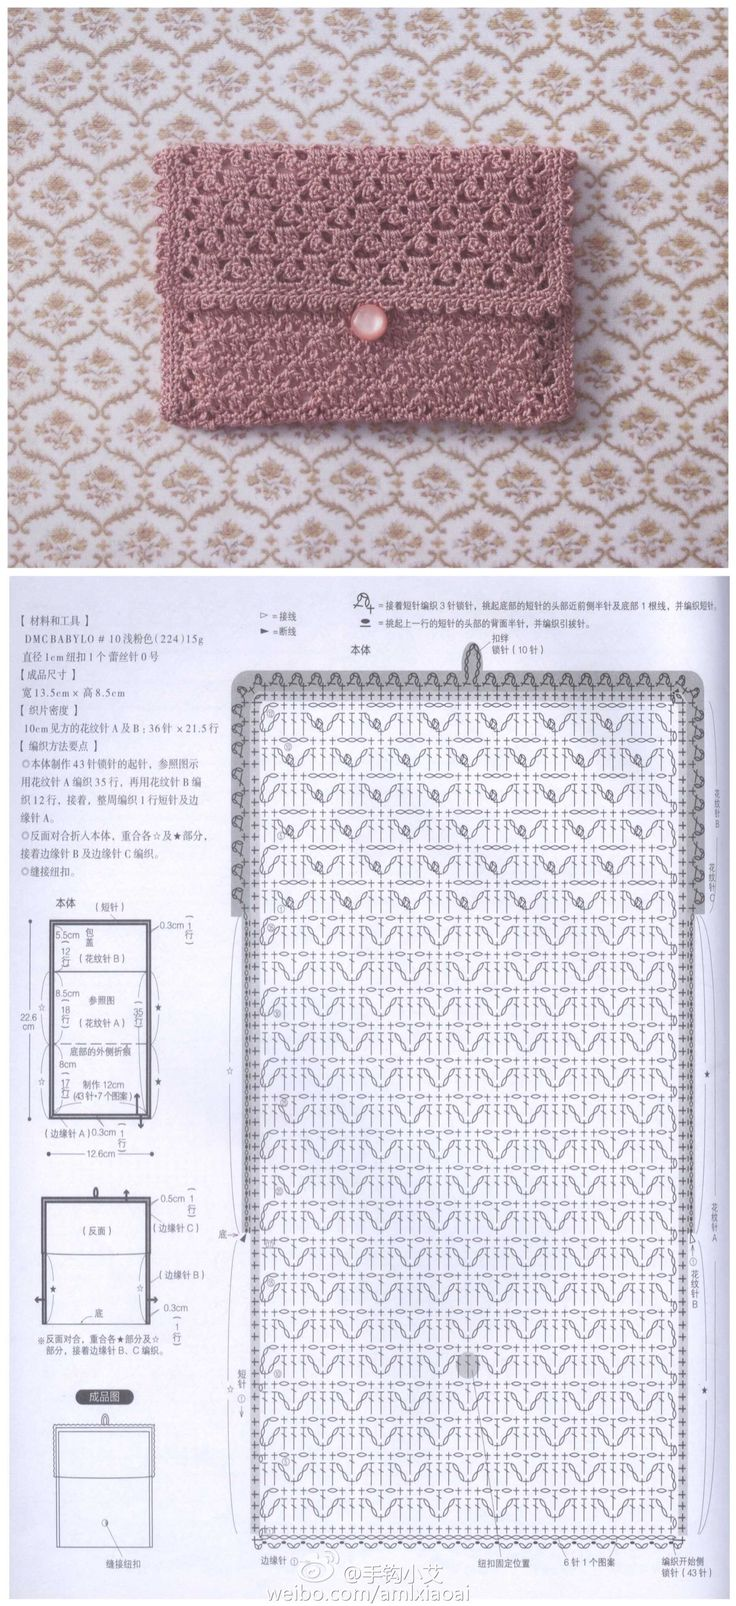 Crochet purse pattern, only diagram , good enough